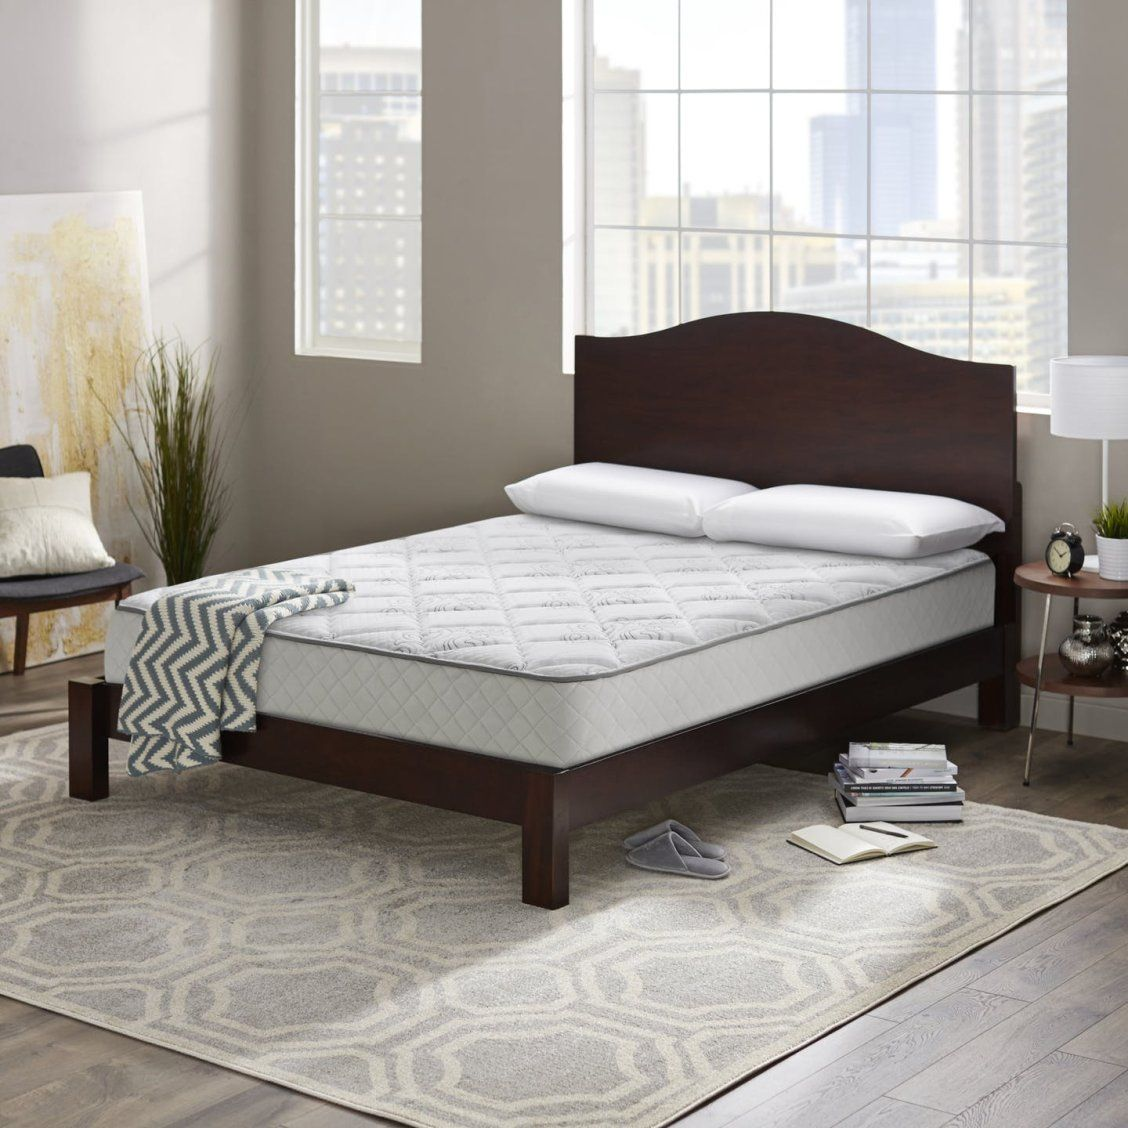 Here's How to Pick the Best Mattress for Your Zodiac Sign